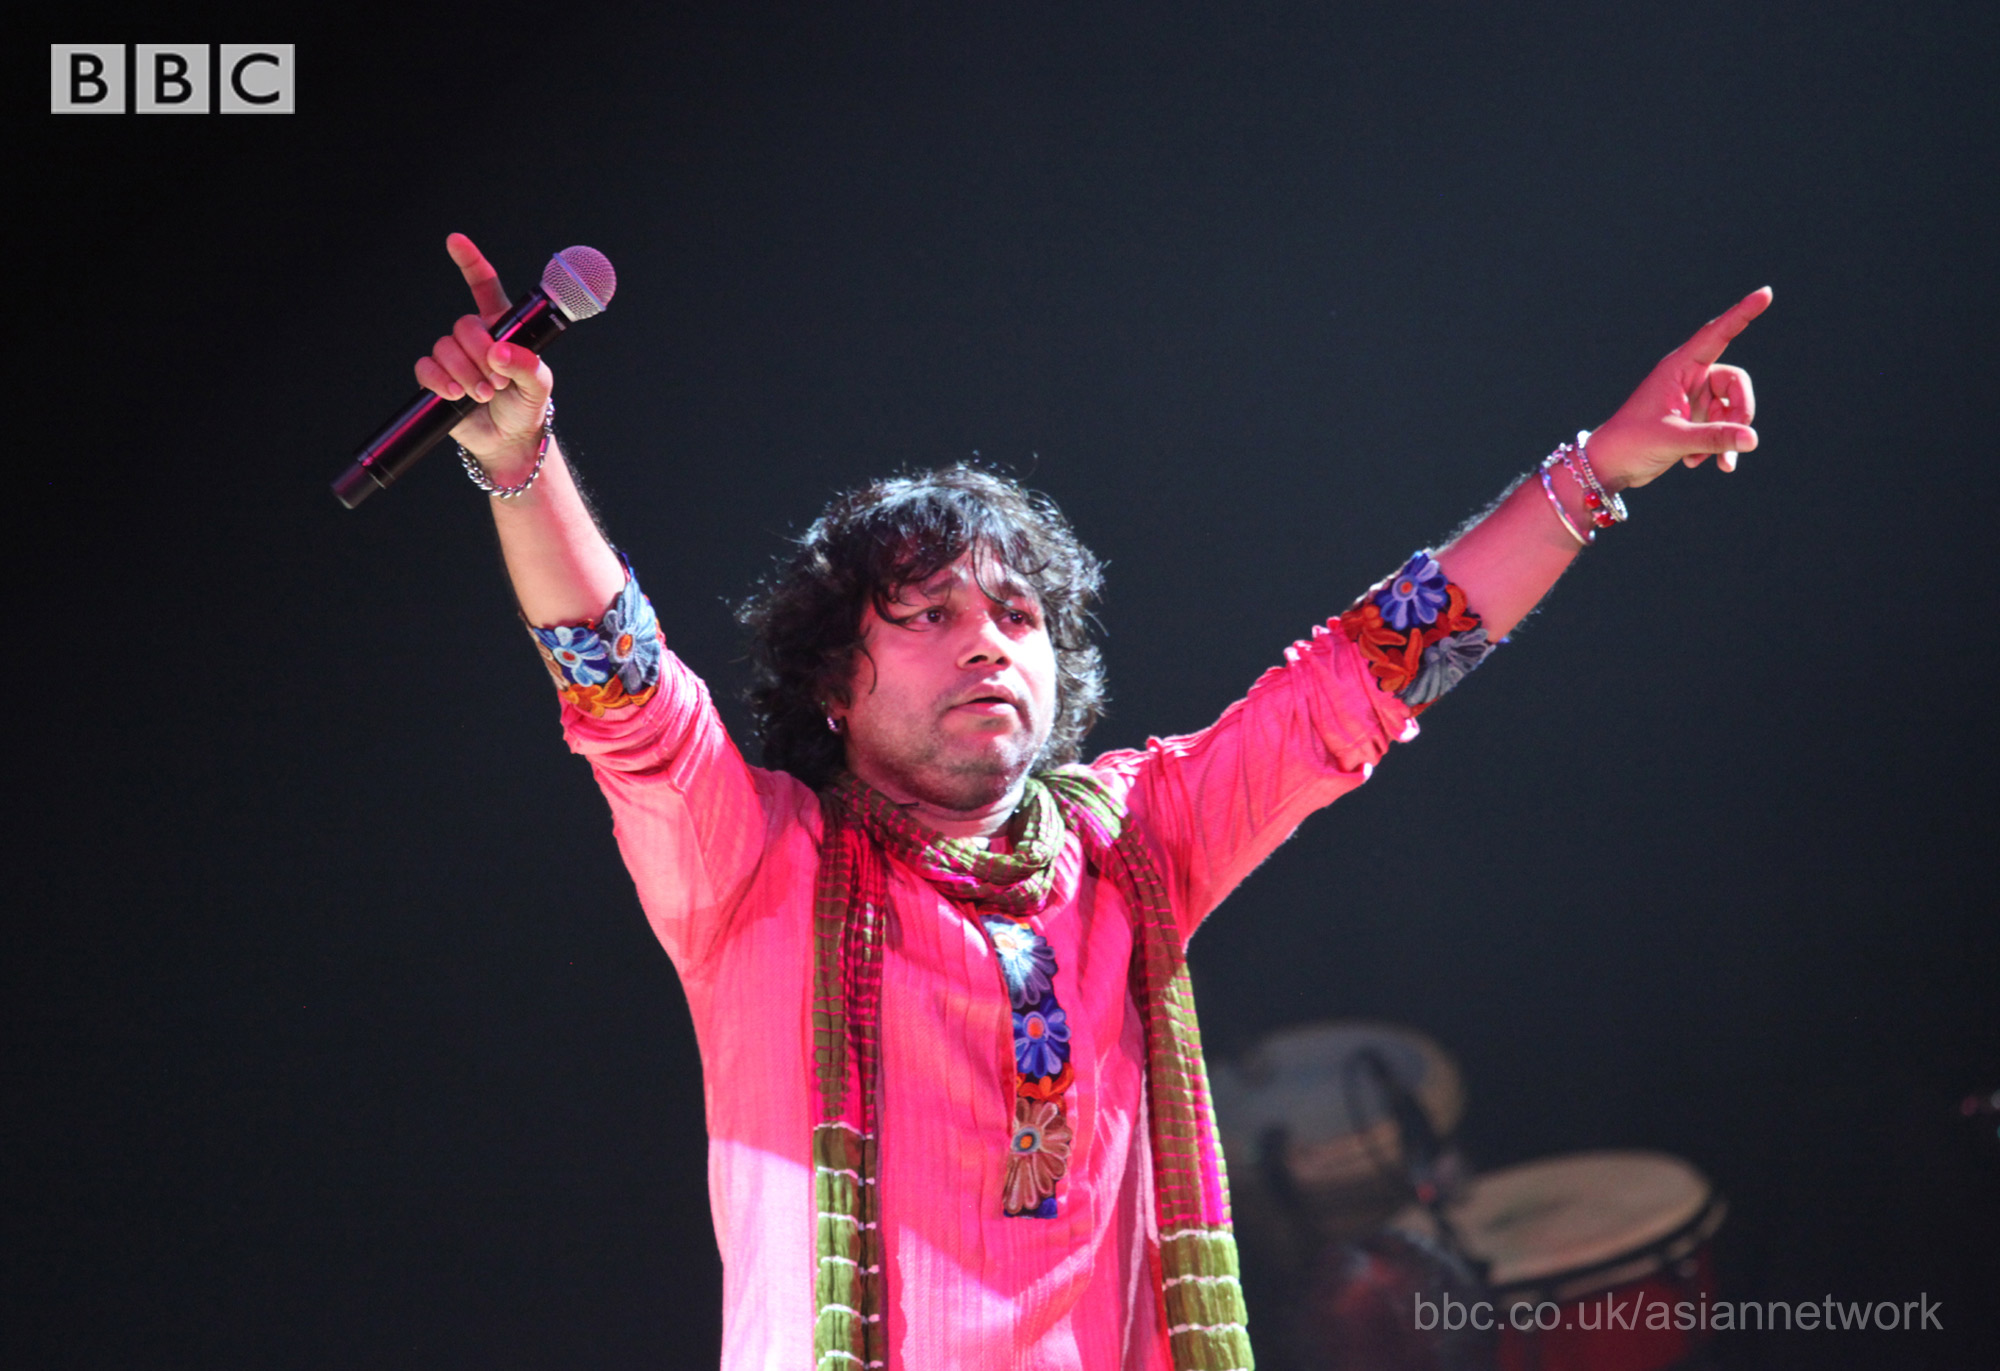 kailash kher BBC Asian Network presents 'Asian Music Stars' on BBC Red Button